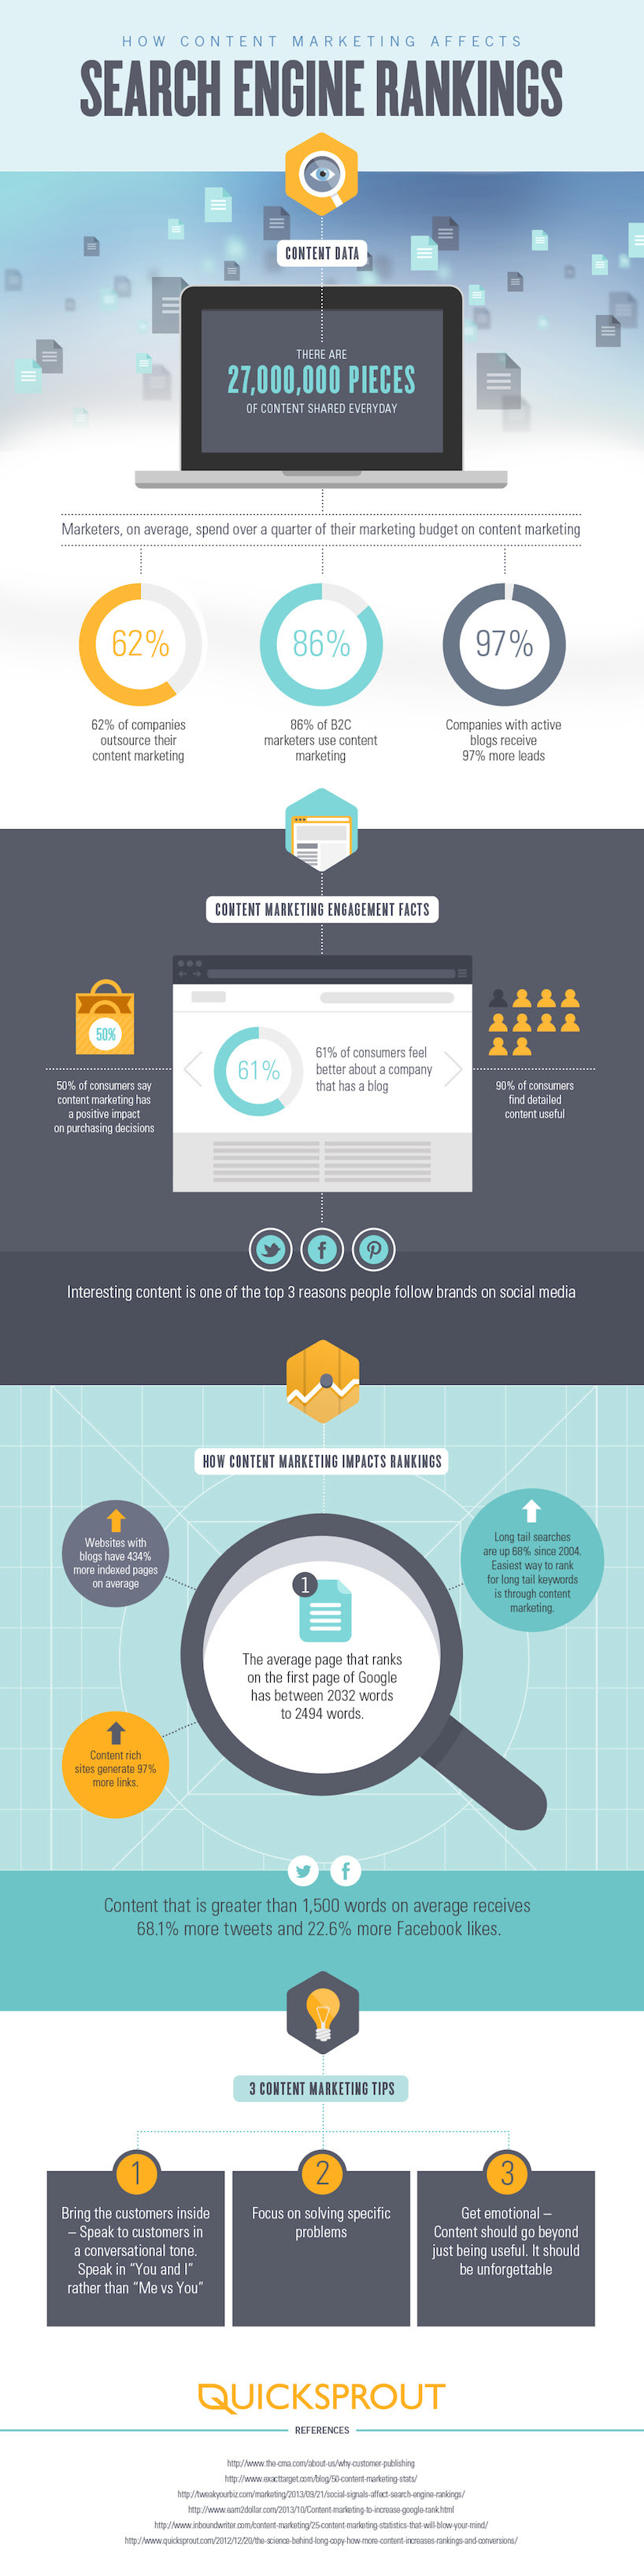 How Content Marketing Affects Search Engine Rankings - infographic